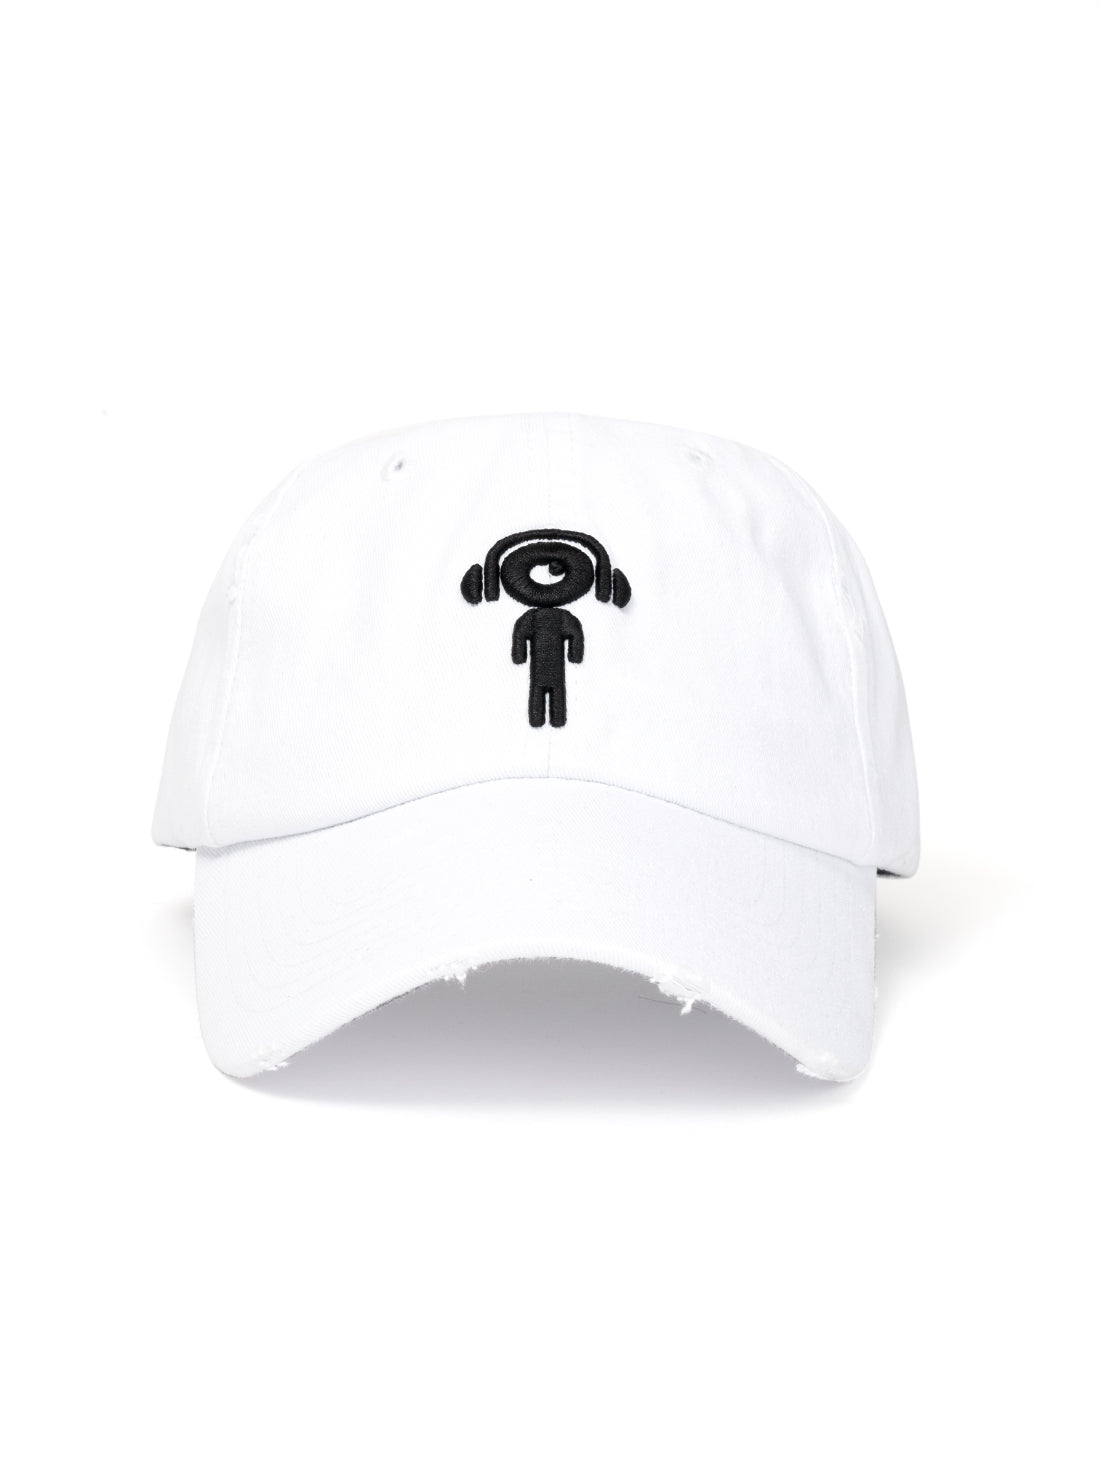 DISTRESS DAD HAT WHITE - BLACK LIL MAN - Triangulo Swag